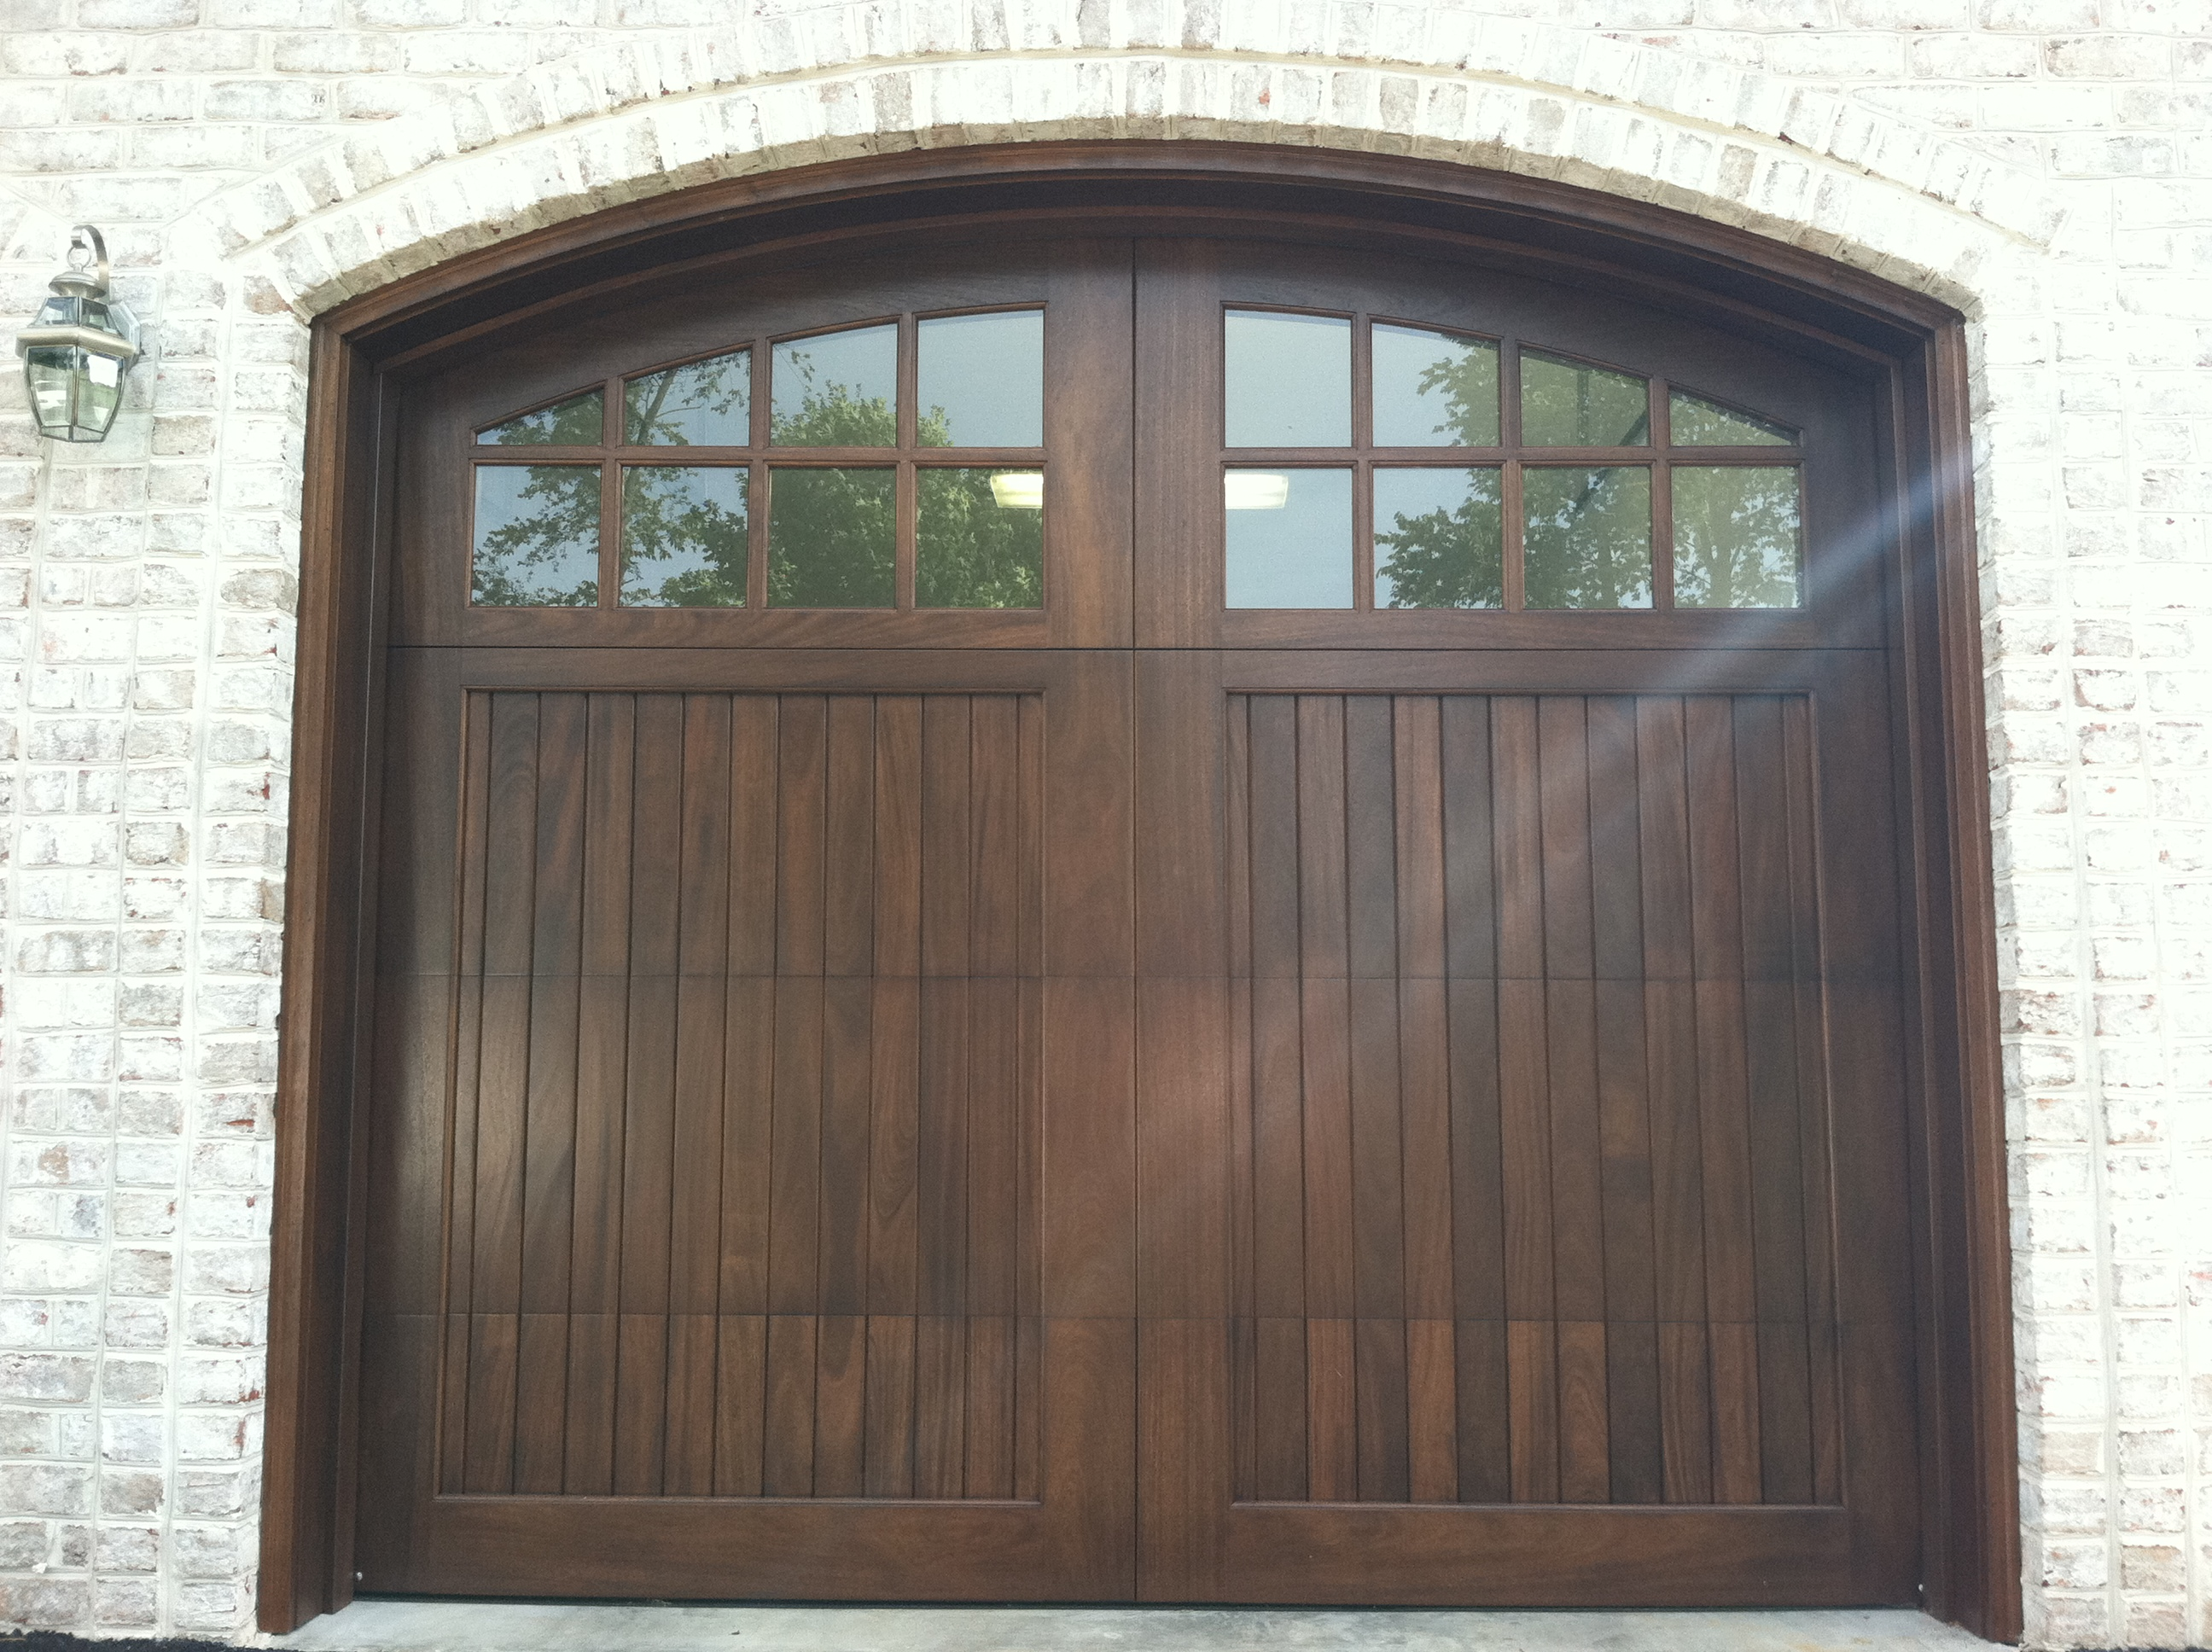 1936 #5F4E42 Wood Garage Doors And Carriage Doors Clearville Pennsylvania wallpaper Grarage Doors 38152592